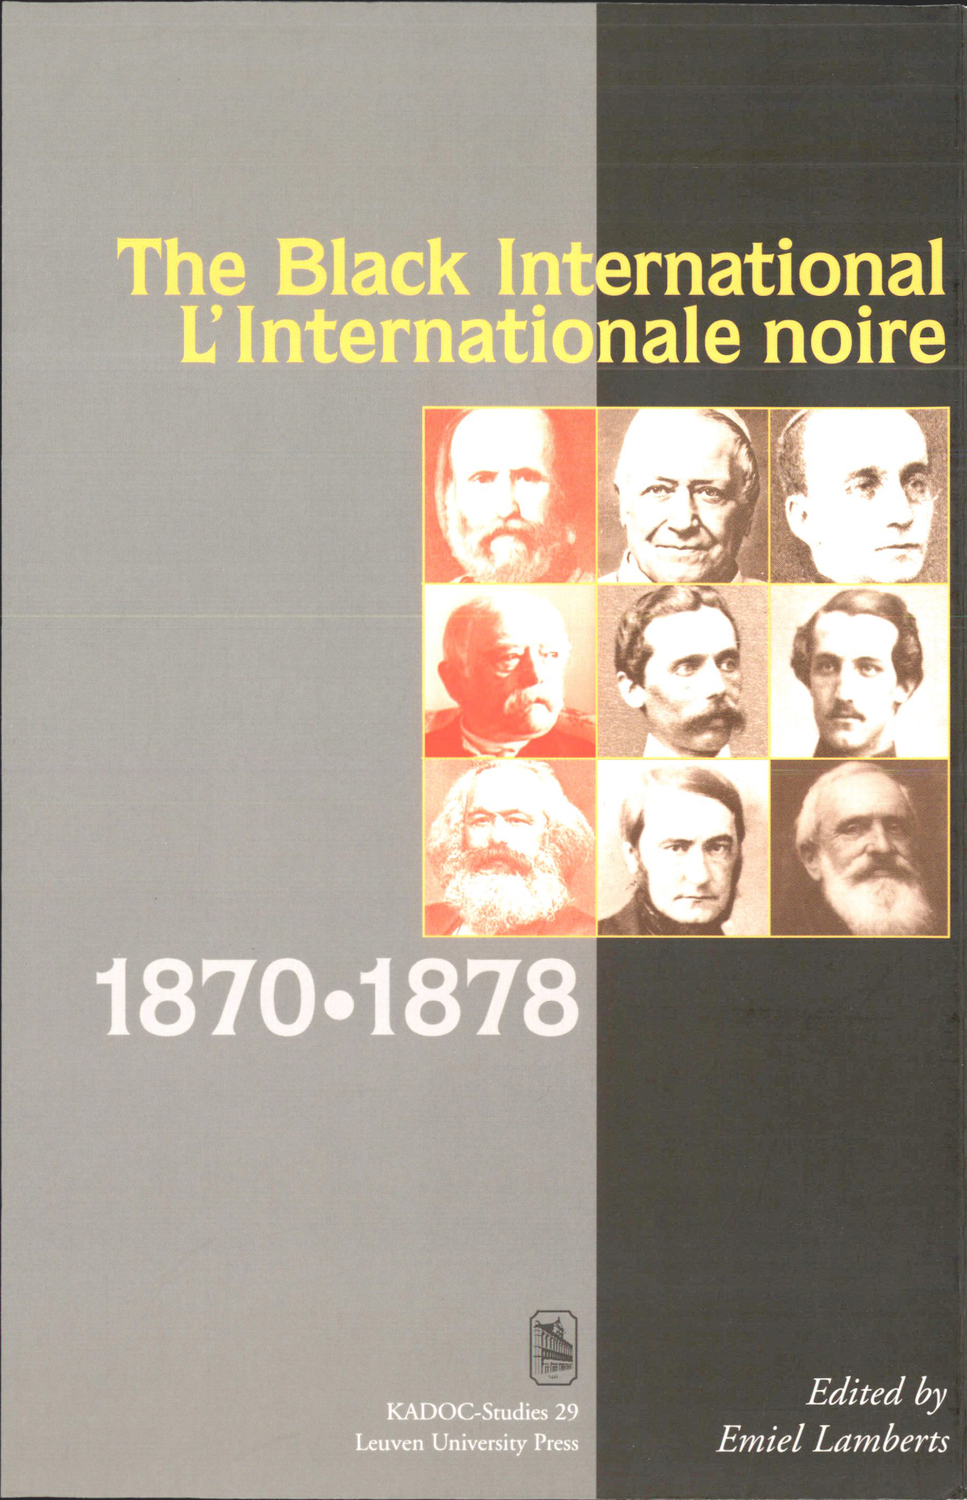 The Black International - L'internationale noire (1870-1878)